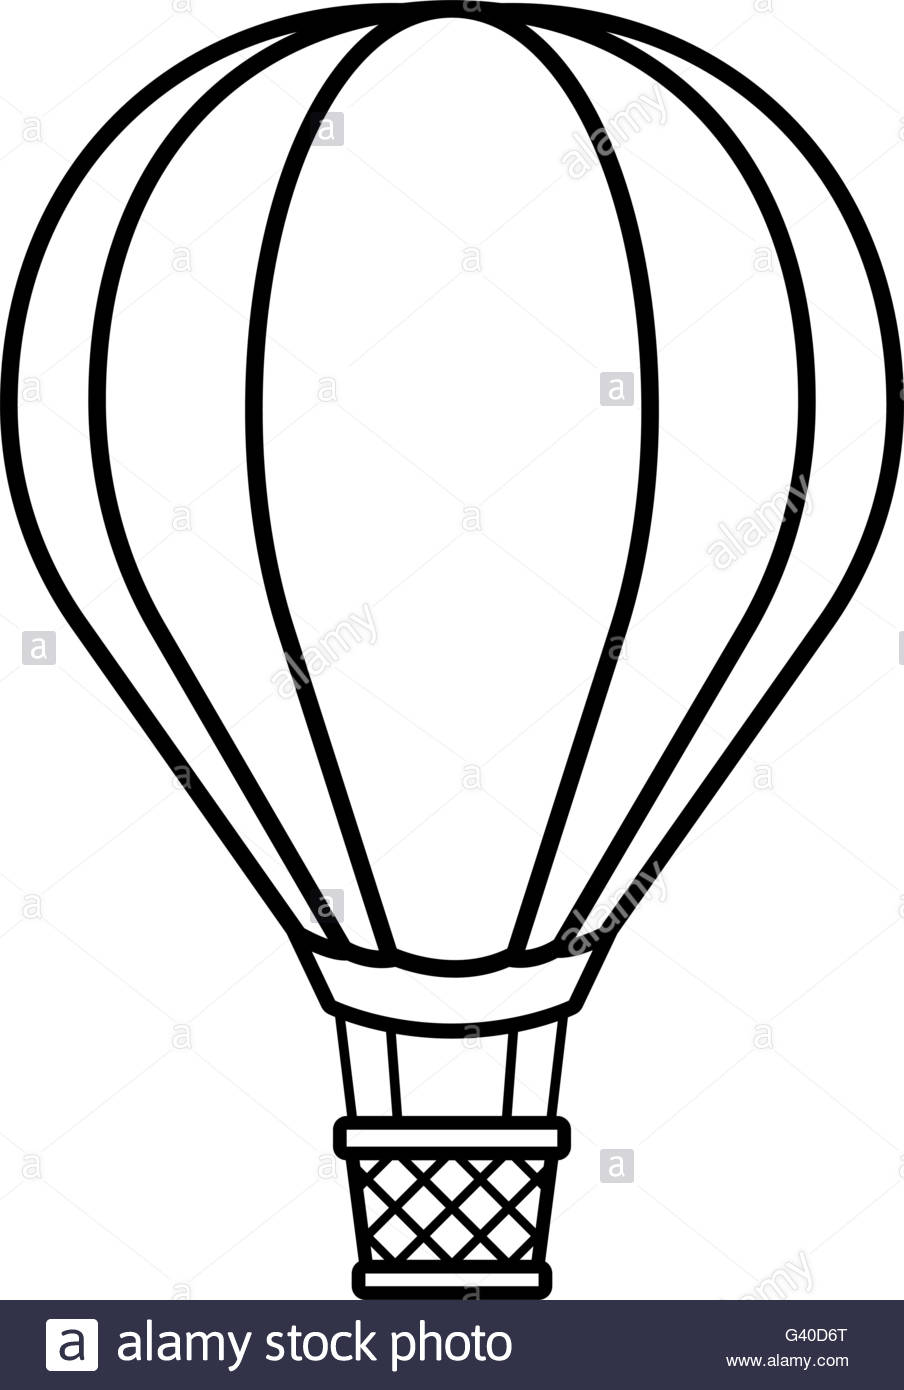 904x1390 Vector Image Of Silhouette Hot Air Balloon Over White Background